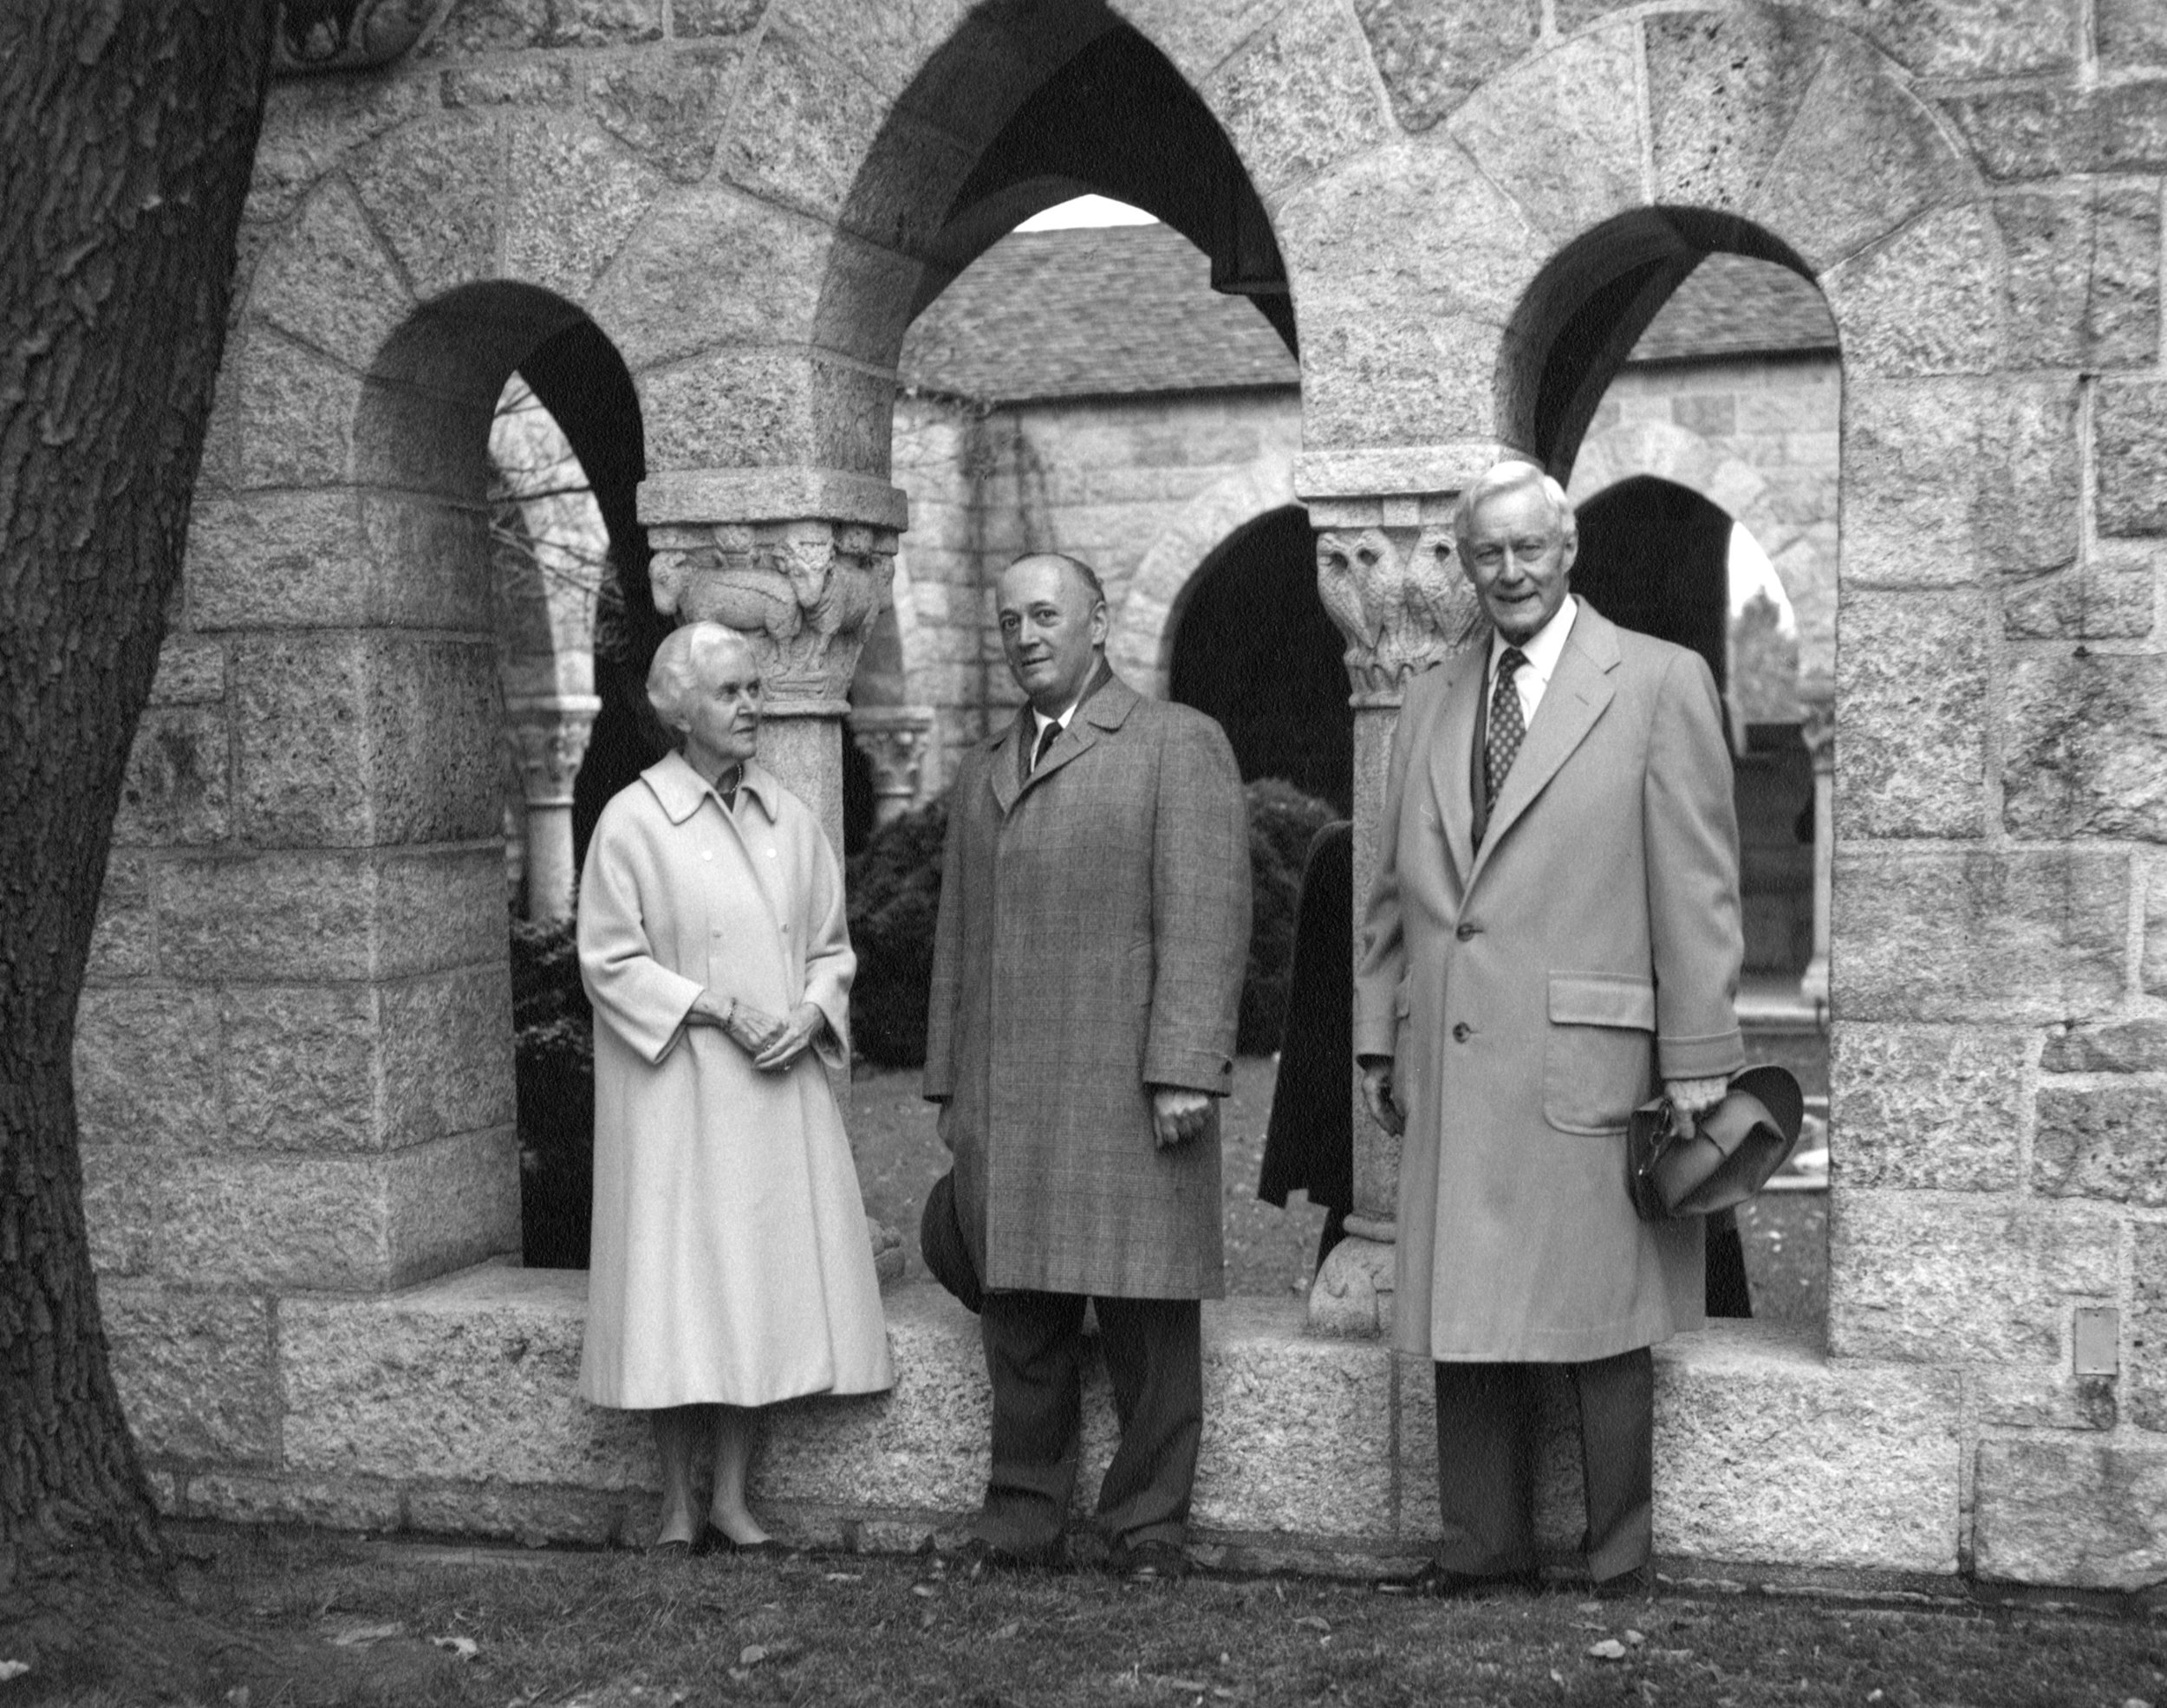 James Rorimer stands between Mildred and Raymond Pitcairn outside of Glencairn's cloister on November 11, 1965. Rorimer, then-director of The Metropolitan Museum of Art in New York City, spent the day at Glencairn together with members of The Cloisters staff. The visit and house tour was captured on audio tape.